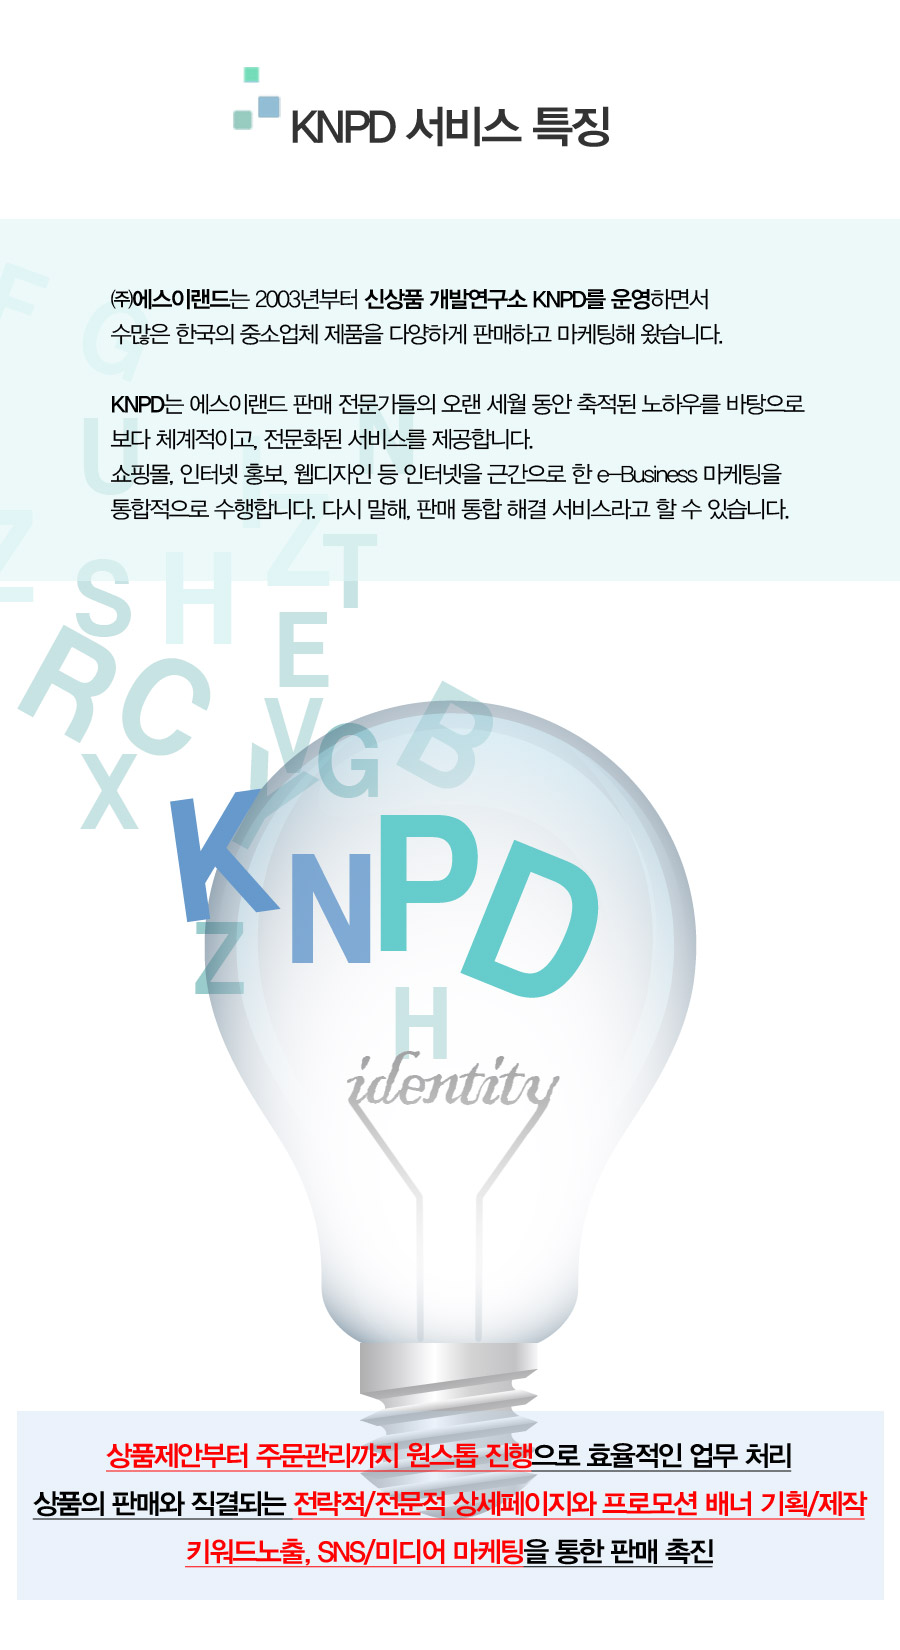 KNPD 서비스 특징